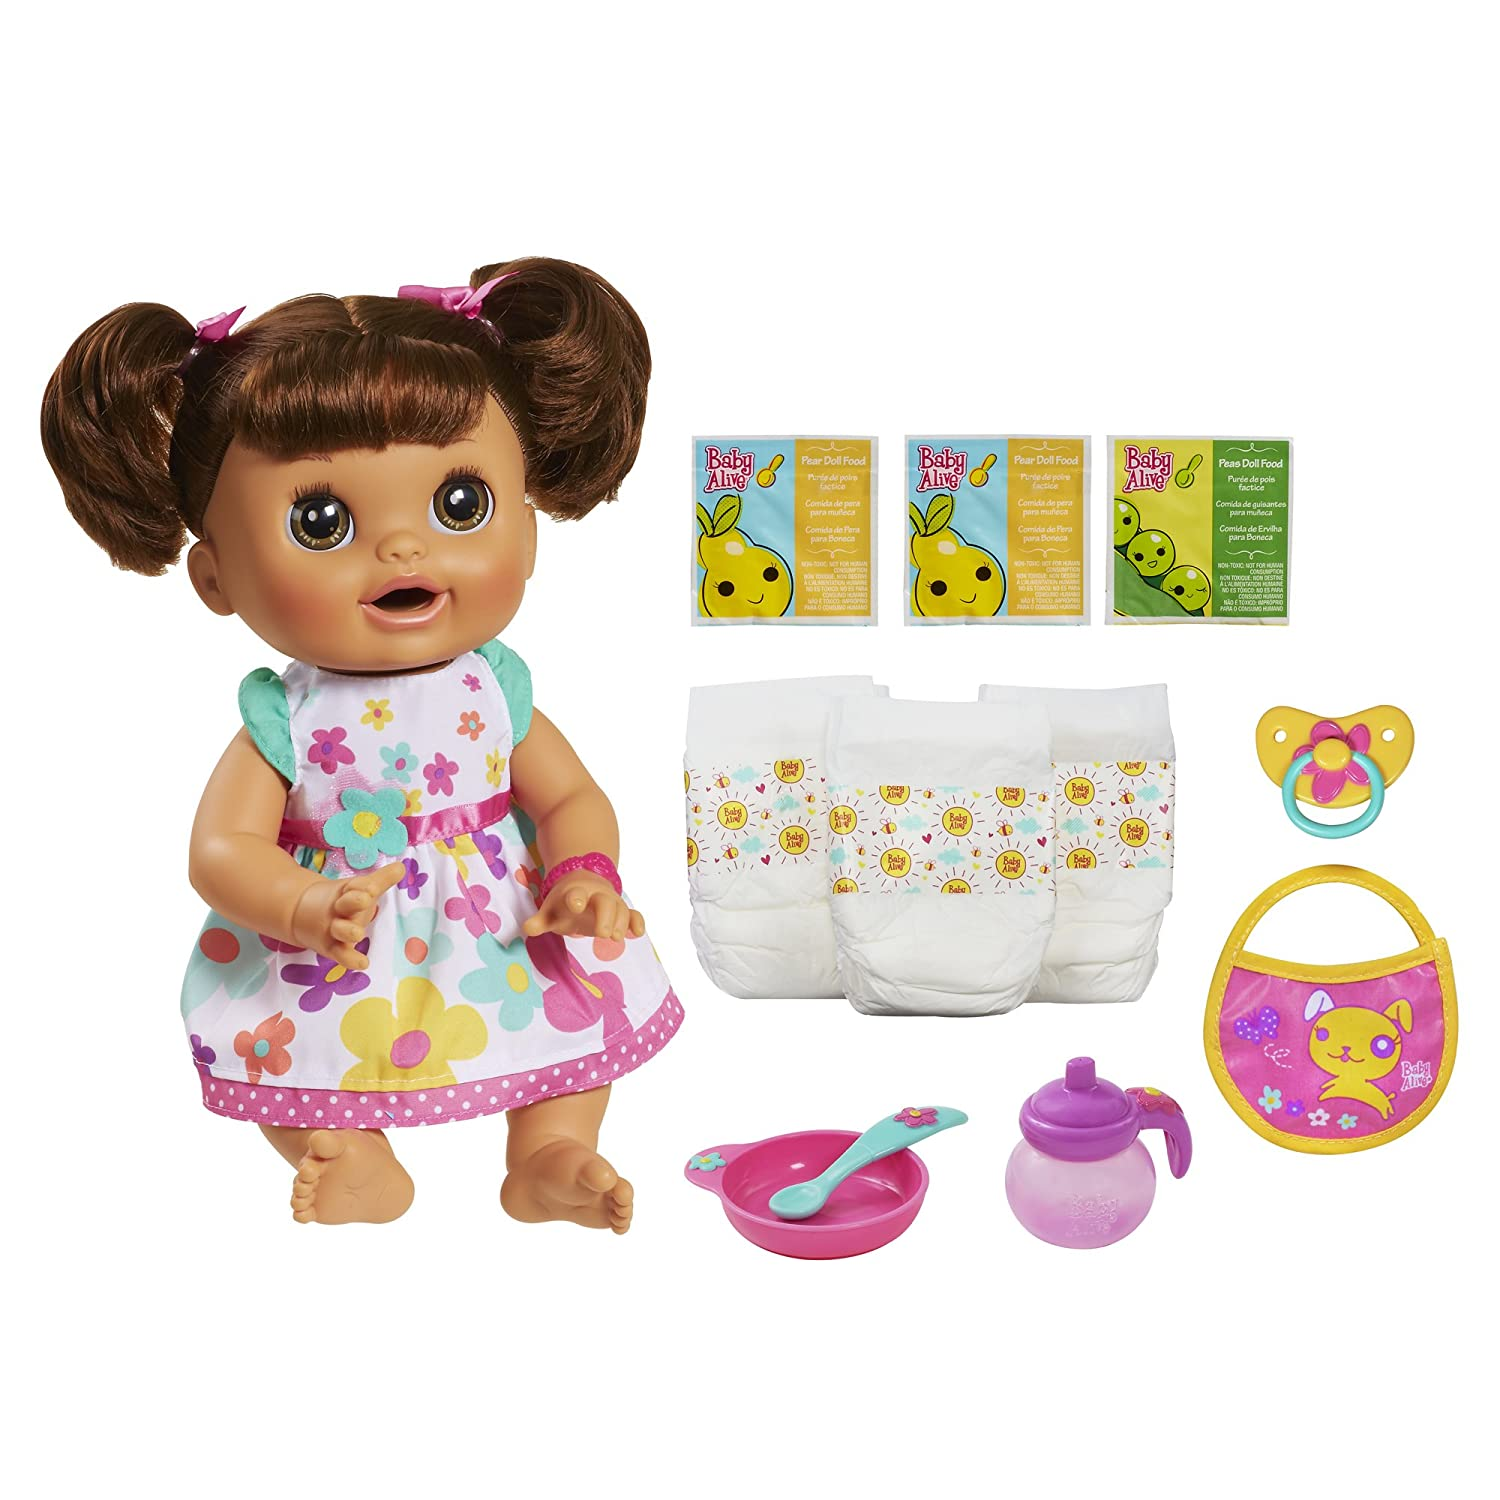 Amazon.com  Baby Alive Real Surprises Baby Doll(Discontinued by  manufacturer)  Toys   Games a9673f1ad4